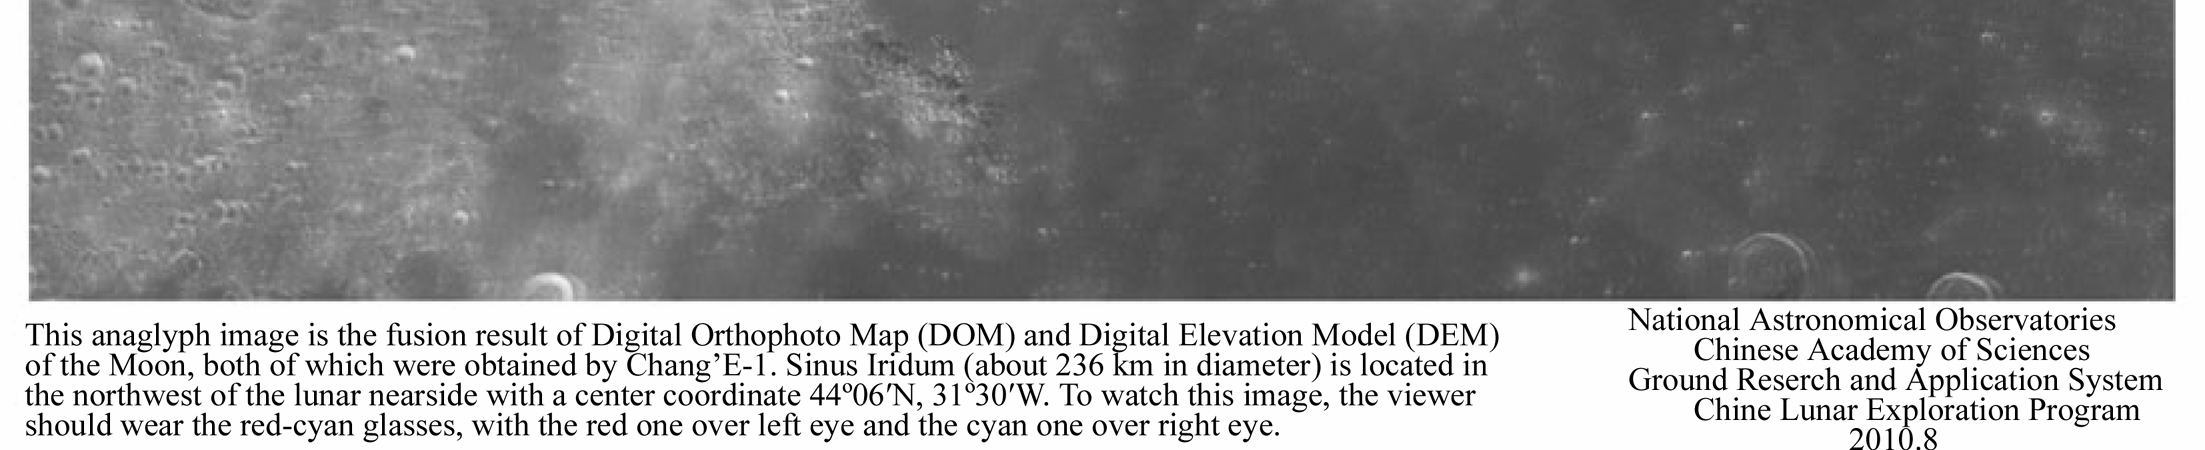 In order to improve the spatial resolution of the elevation measurement of the lunar surface, the CE-2 mission improves the laser altimeter by extending the maximum repetition frequency from 1 to 5